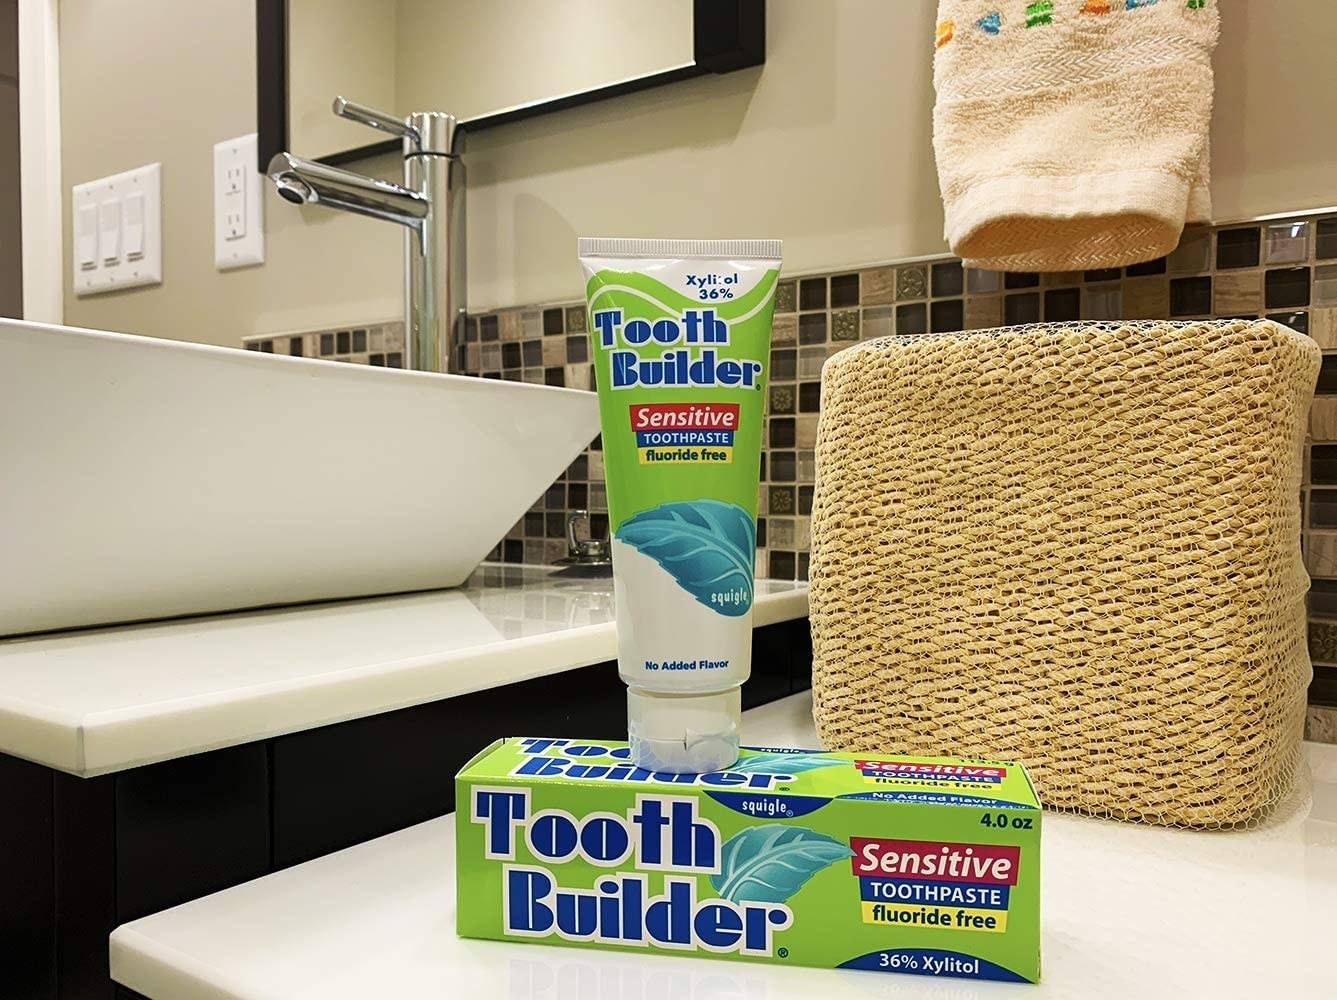 Tooth Builder Fluoride Free Sensitive Toothpaste